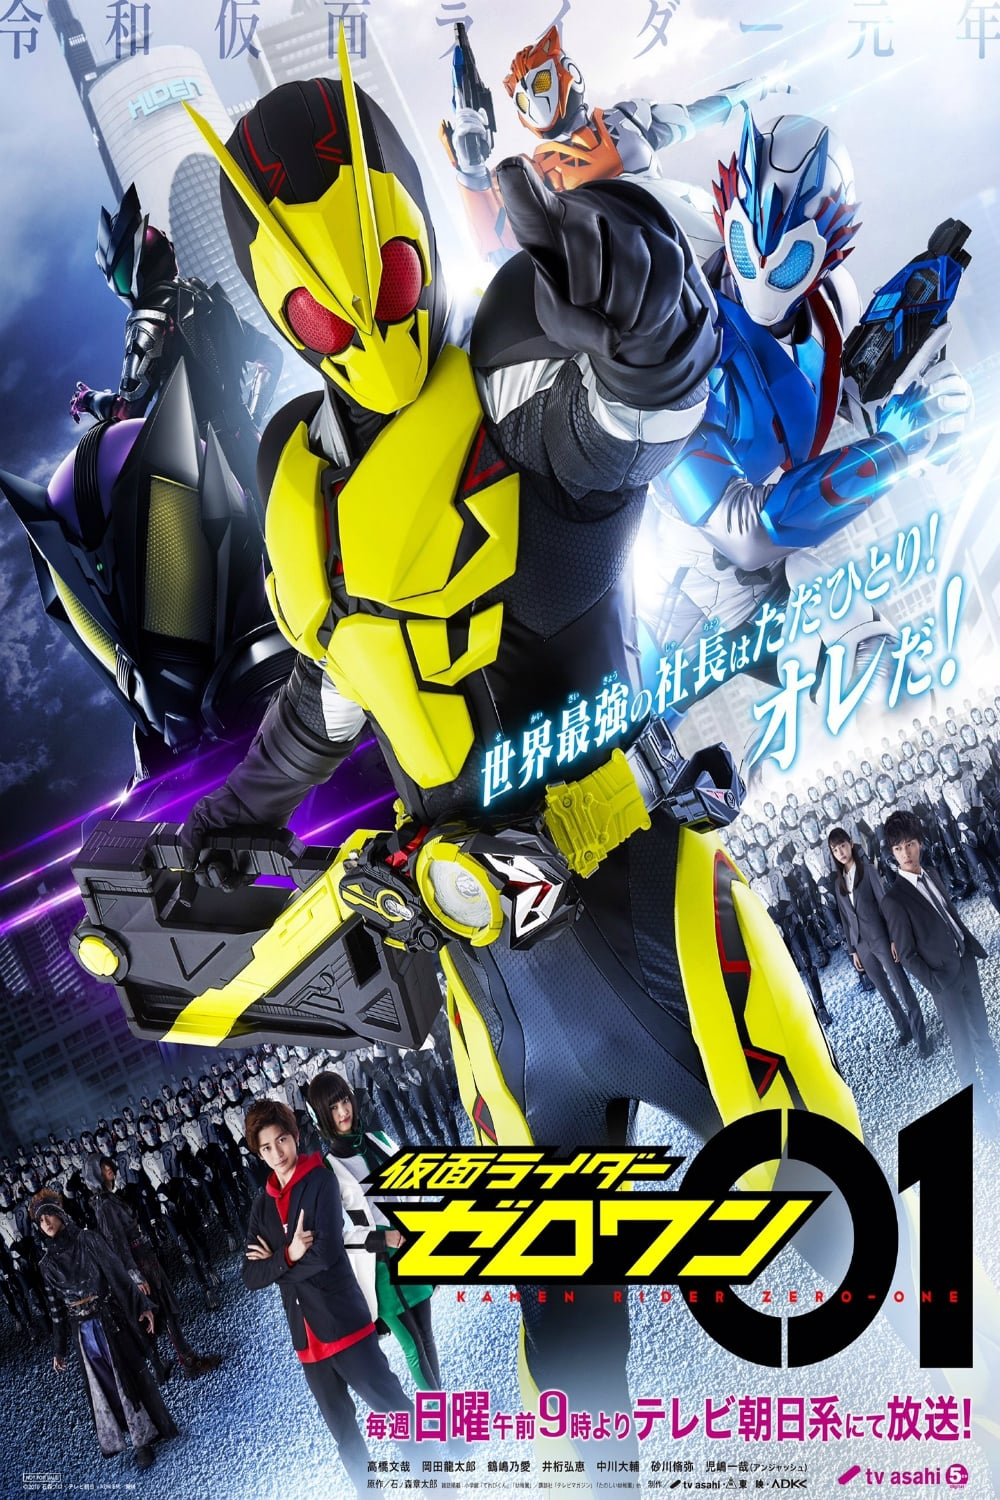 Kamen Rider - Season 21 Episode 2 : Greed, Ice Candy, Present Season 30